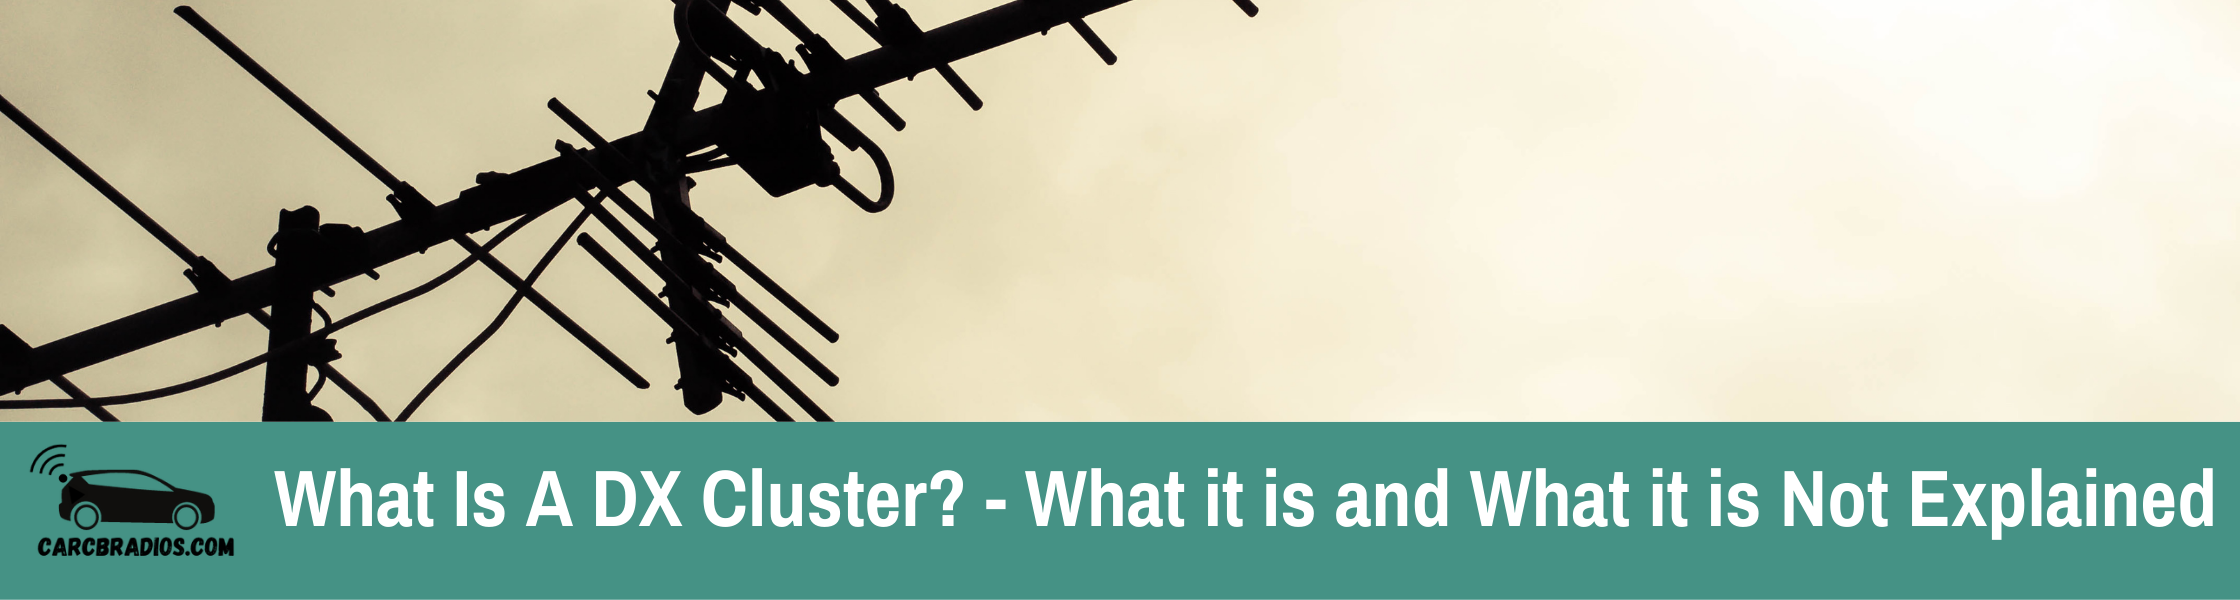 What is a DX Cluster? A DX Cluster is a gathering of nodes that amateur DX hunters can use to communicate about DX they have worked or heard. It's composed of a main computer, which gathers and stores, and distributes information sent by ham radios to it.